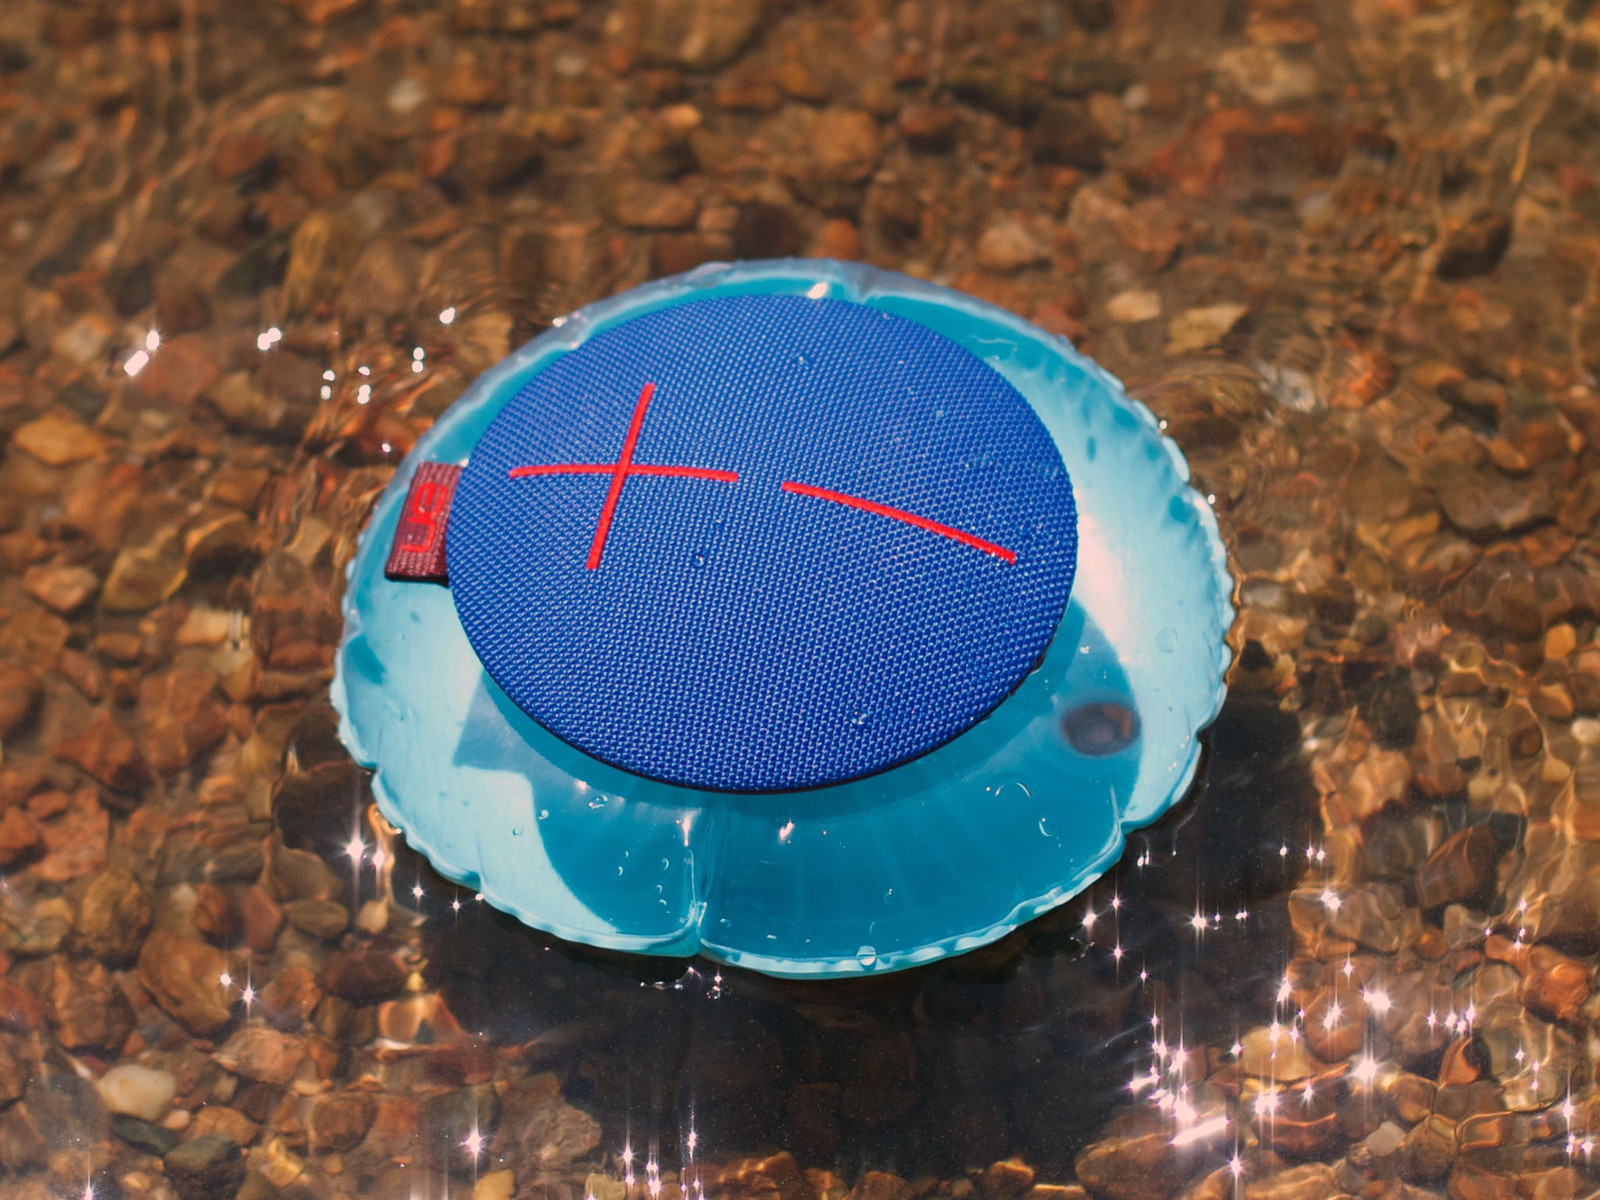 UE Roll review: Waterproof Bluetooth speaker that's fun to play with